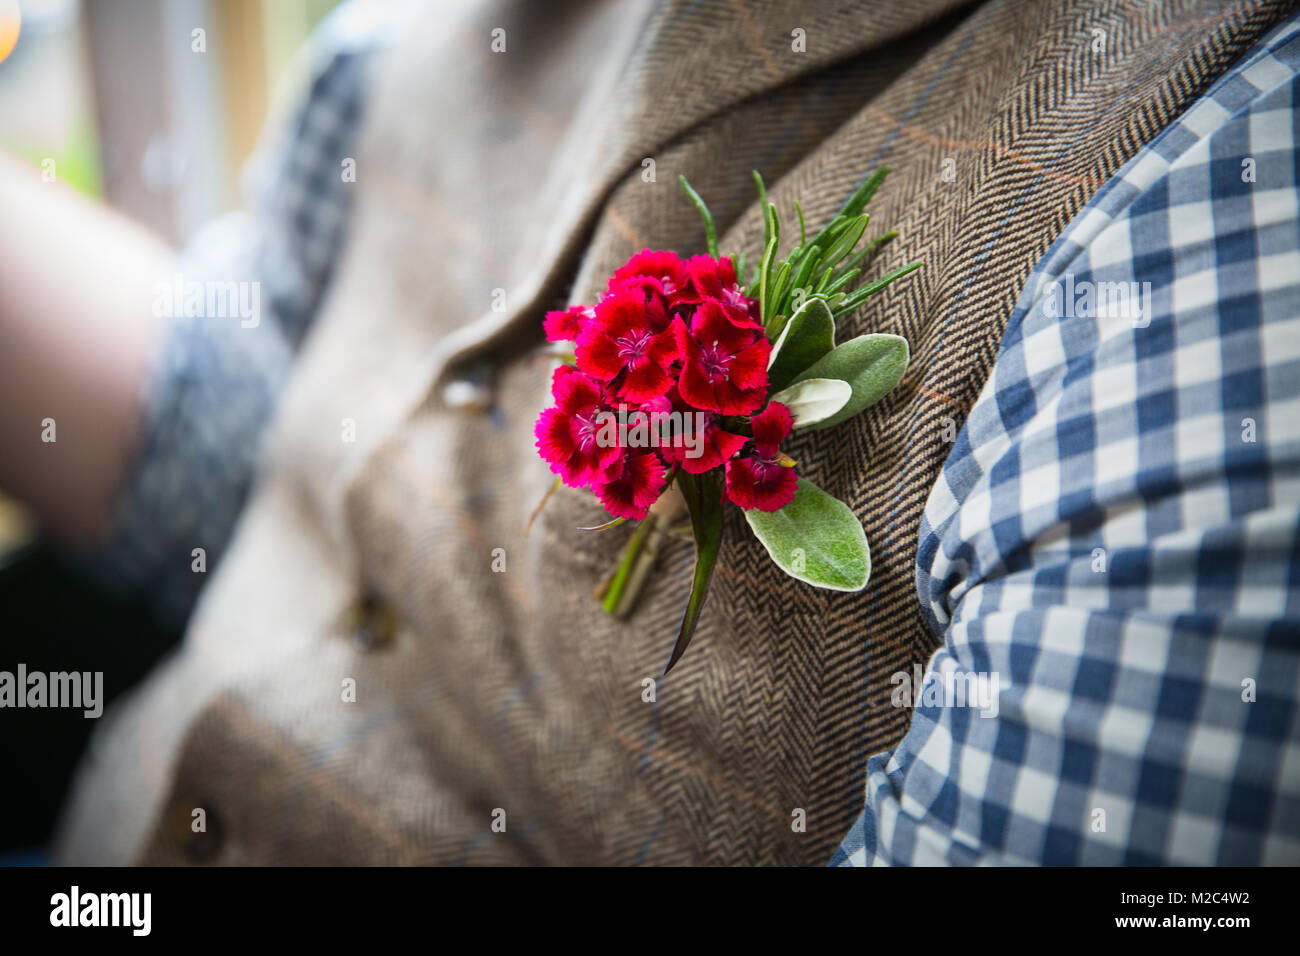 Man wearing herringbone waistcoat, with red boutonniere, mid section, close-up - Stock Image